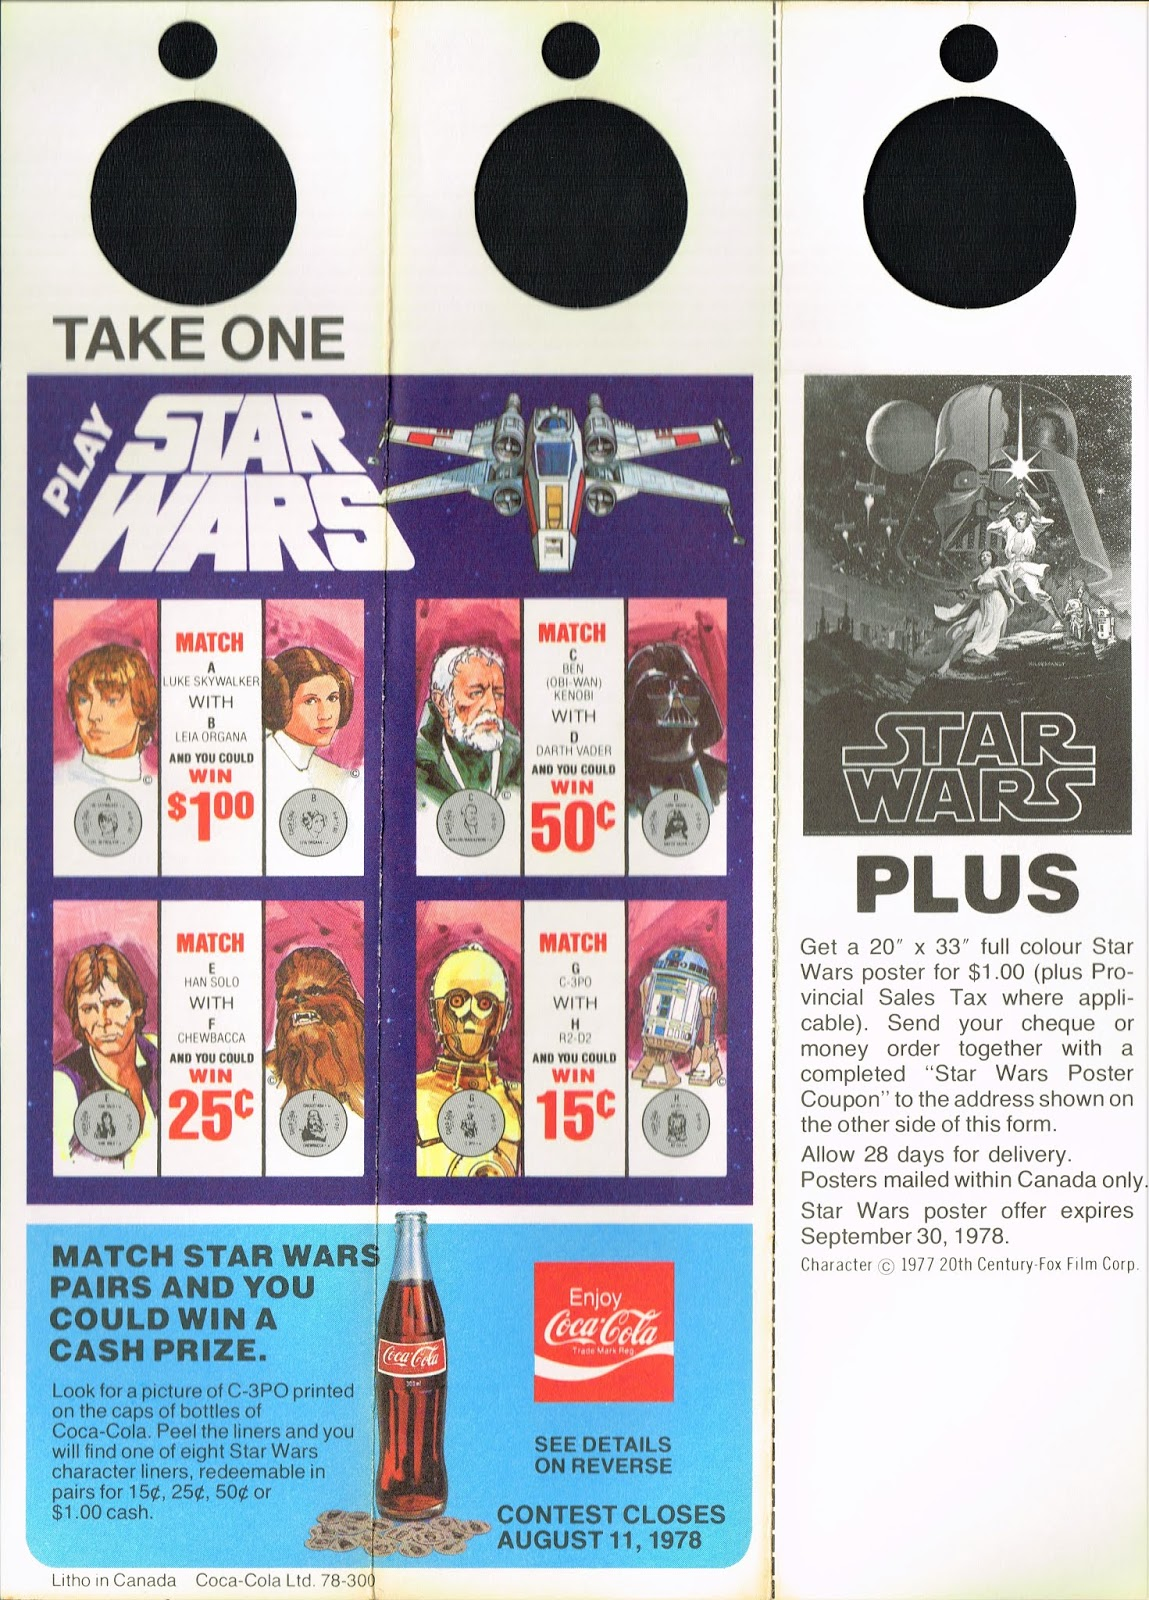 theswca blog: The Canadian Star Wars Coke Promotion of 1978